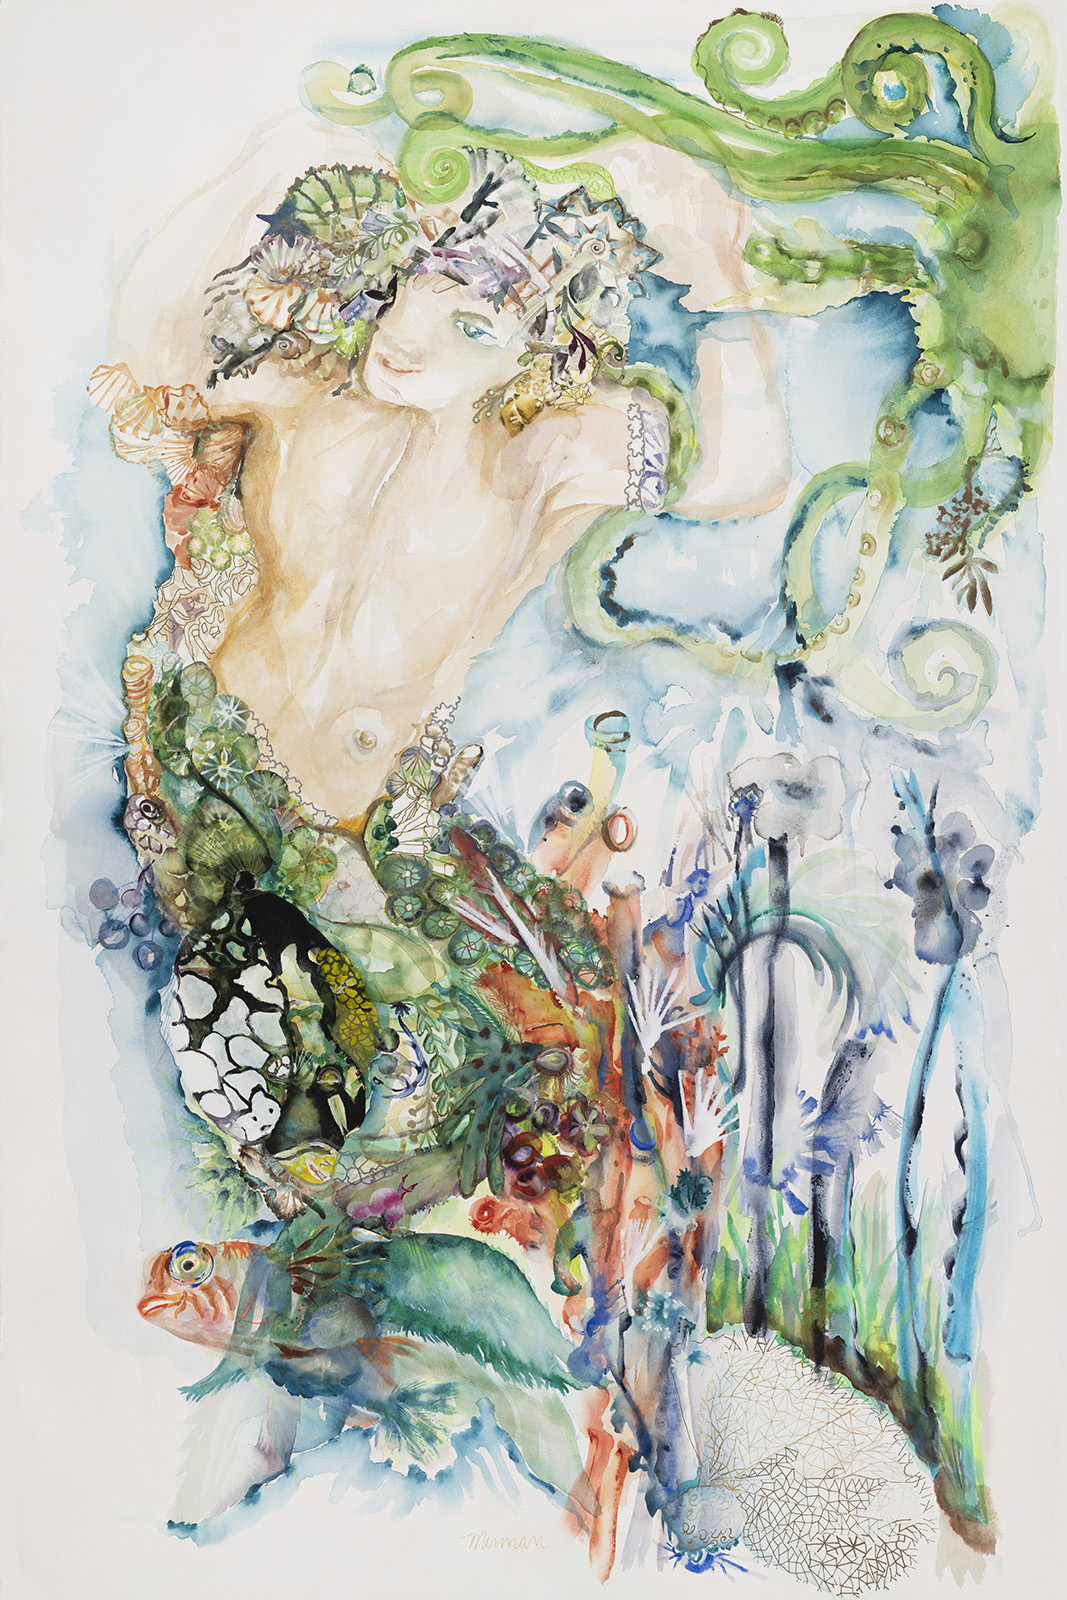 Merman I: Nowhere Man, 2019, Watercolor and gouache with acrylic on paper, 68 x 46 in.